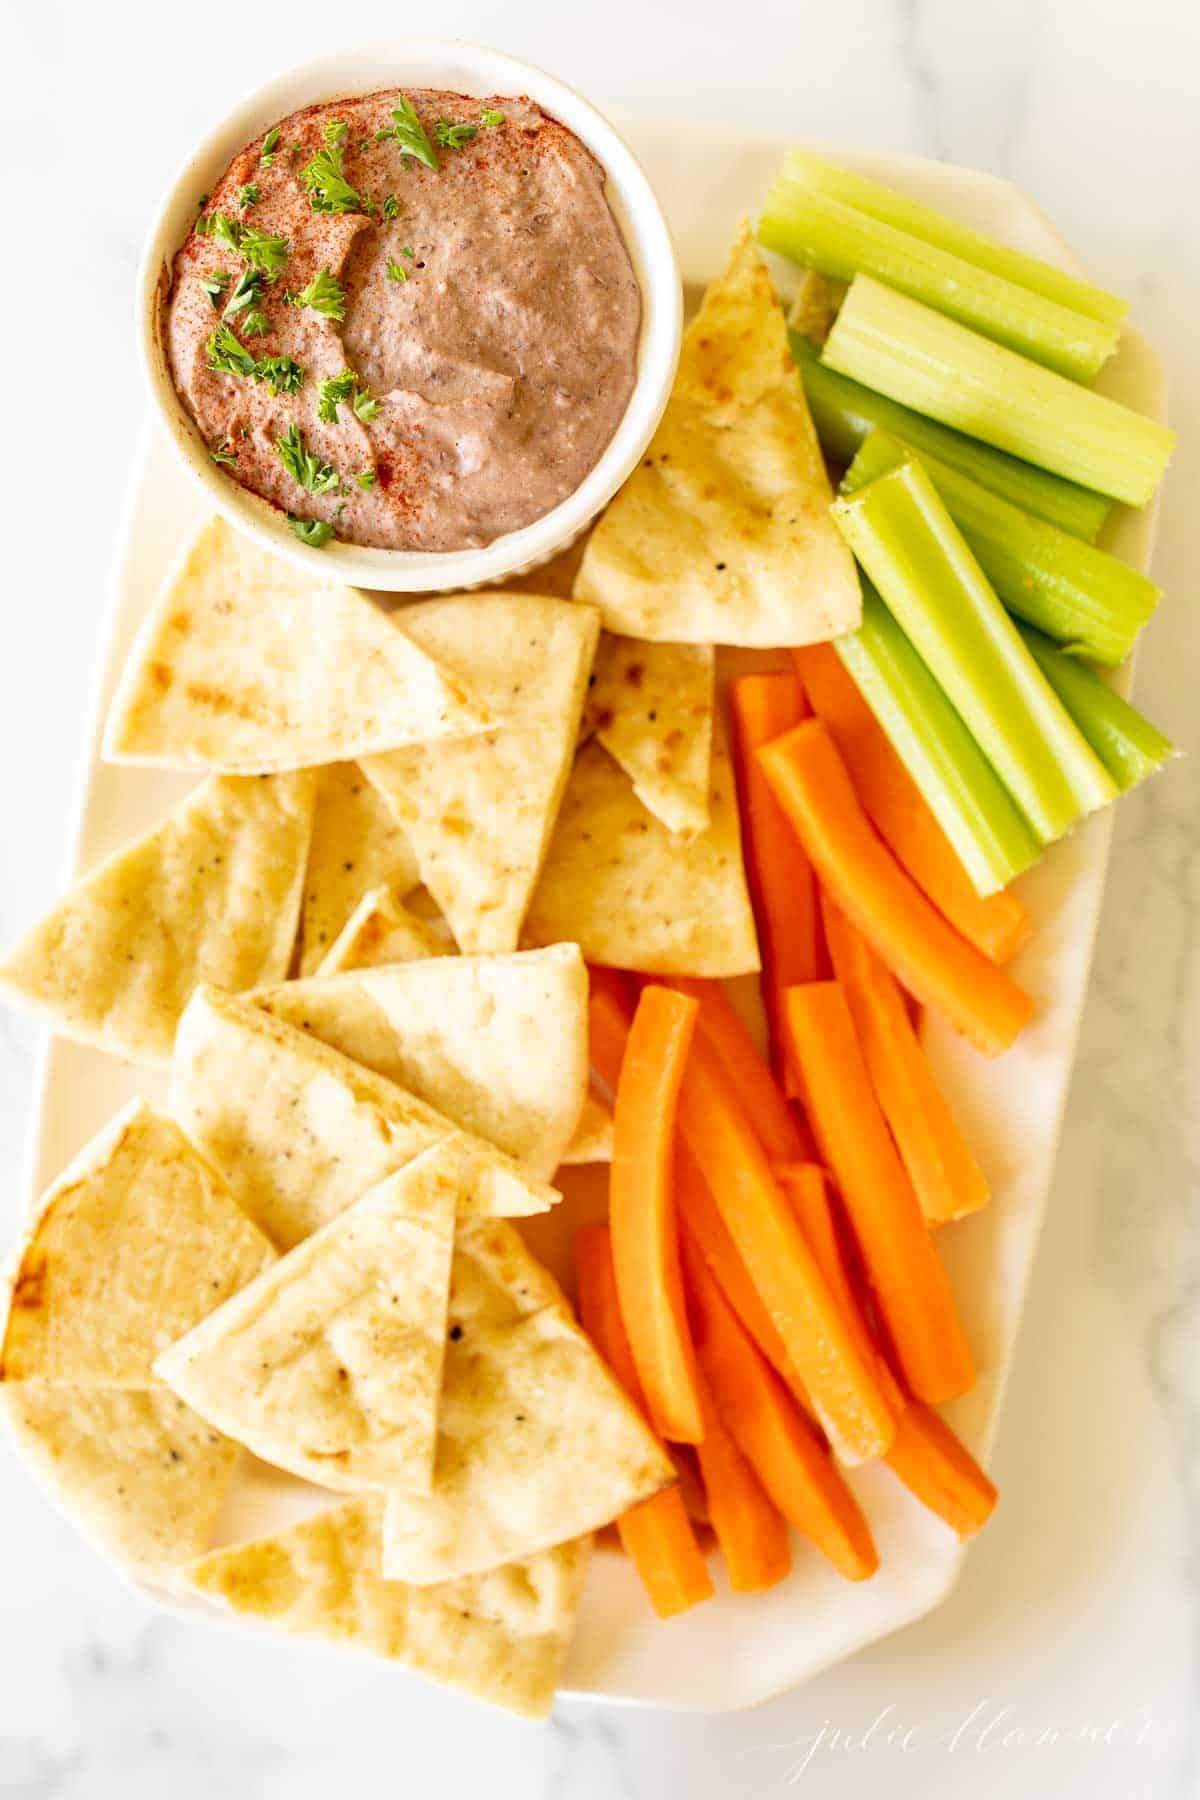 A white platter with a bowl of black bean hummus and pita triangles, celery and carrots.